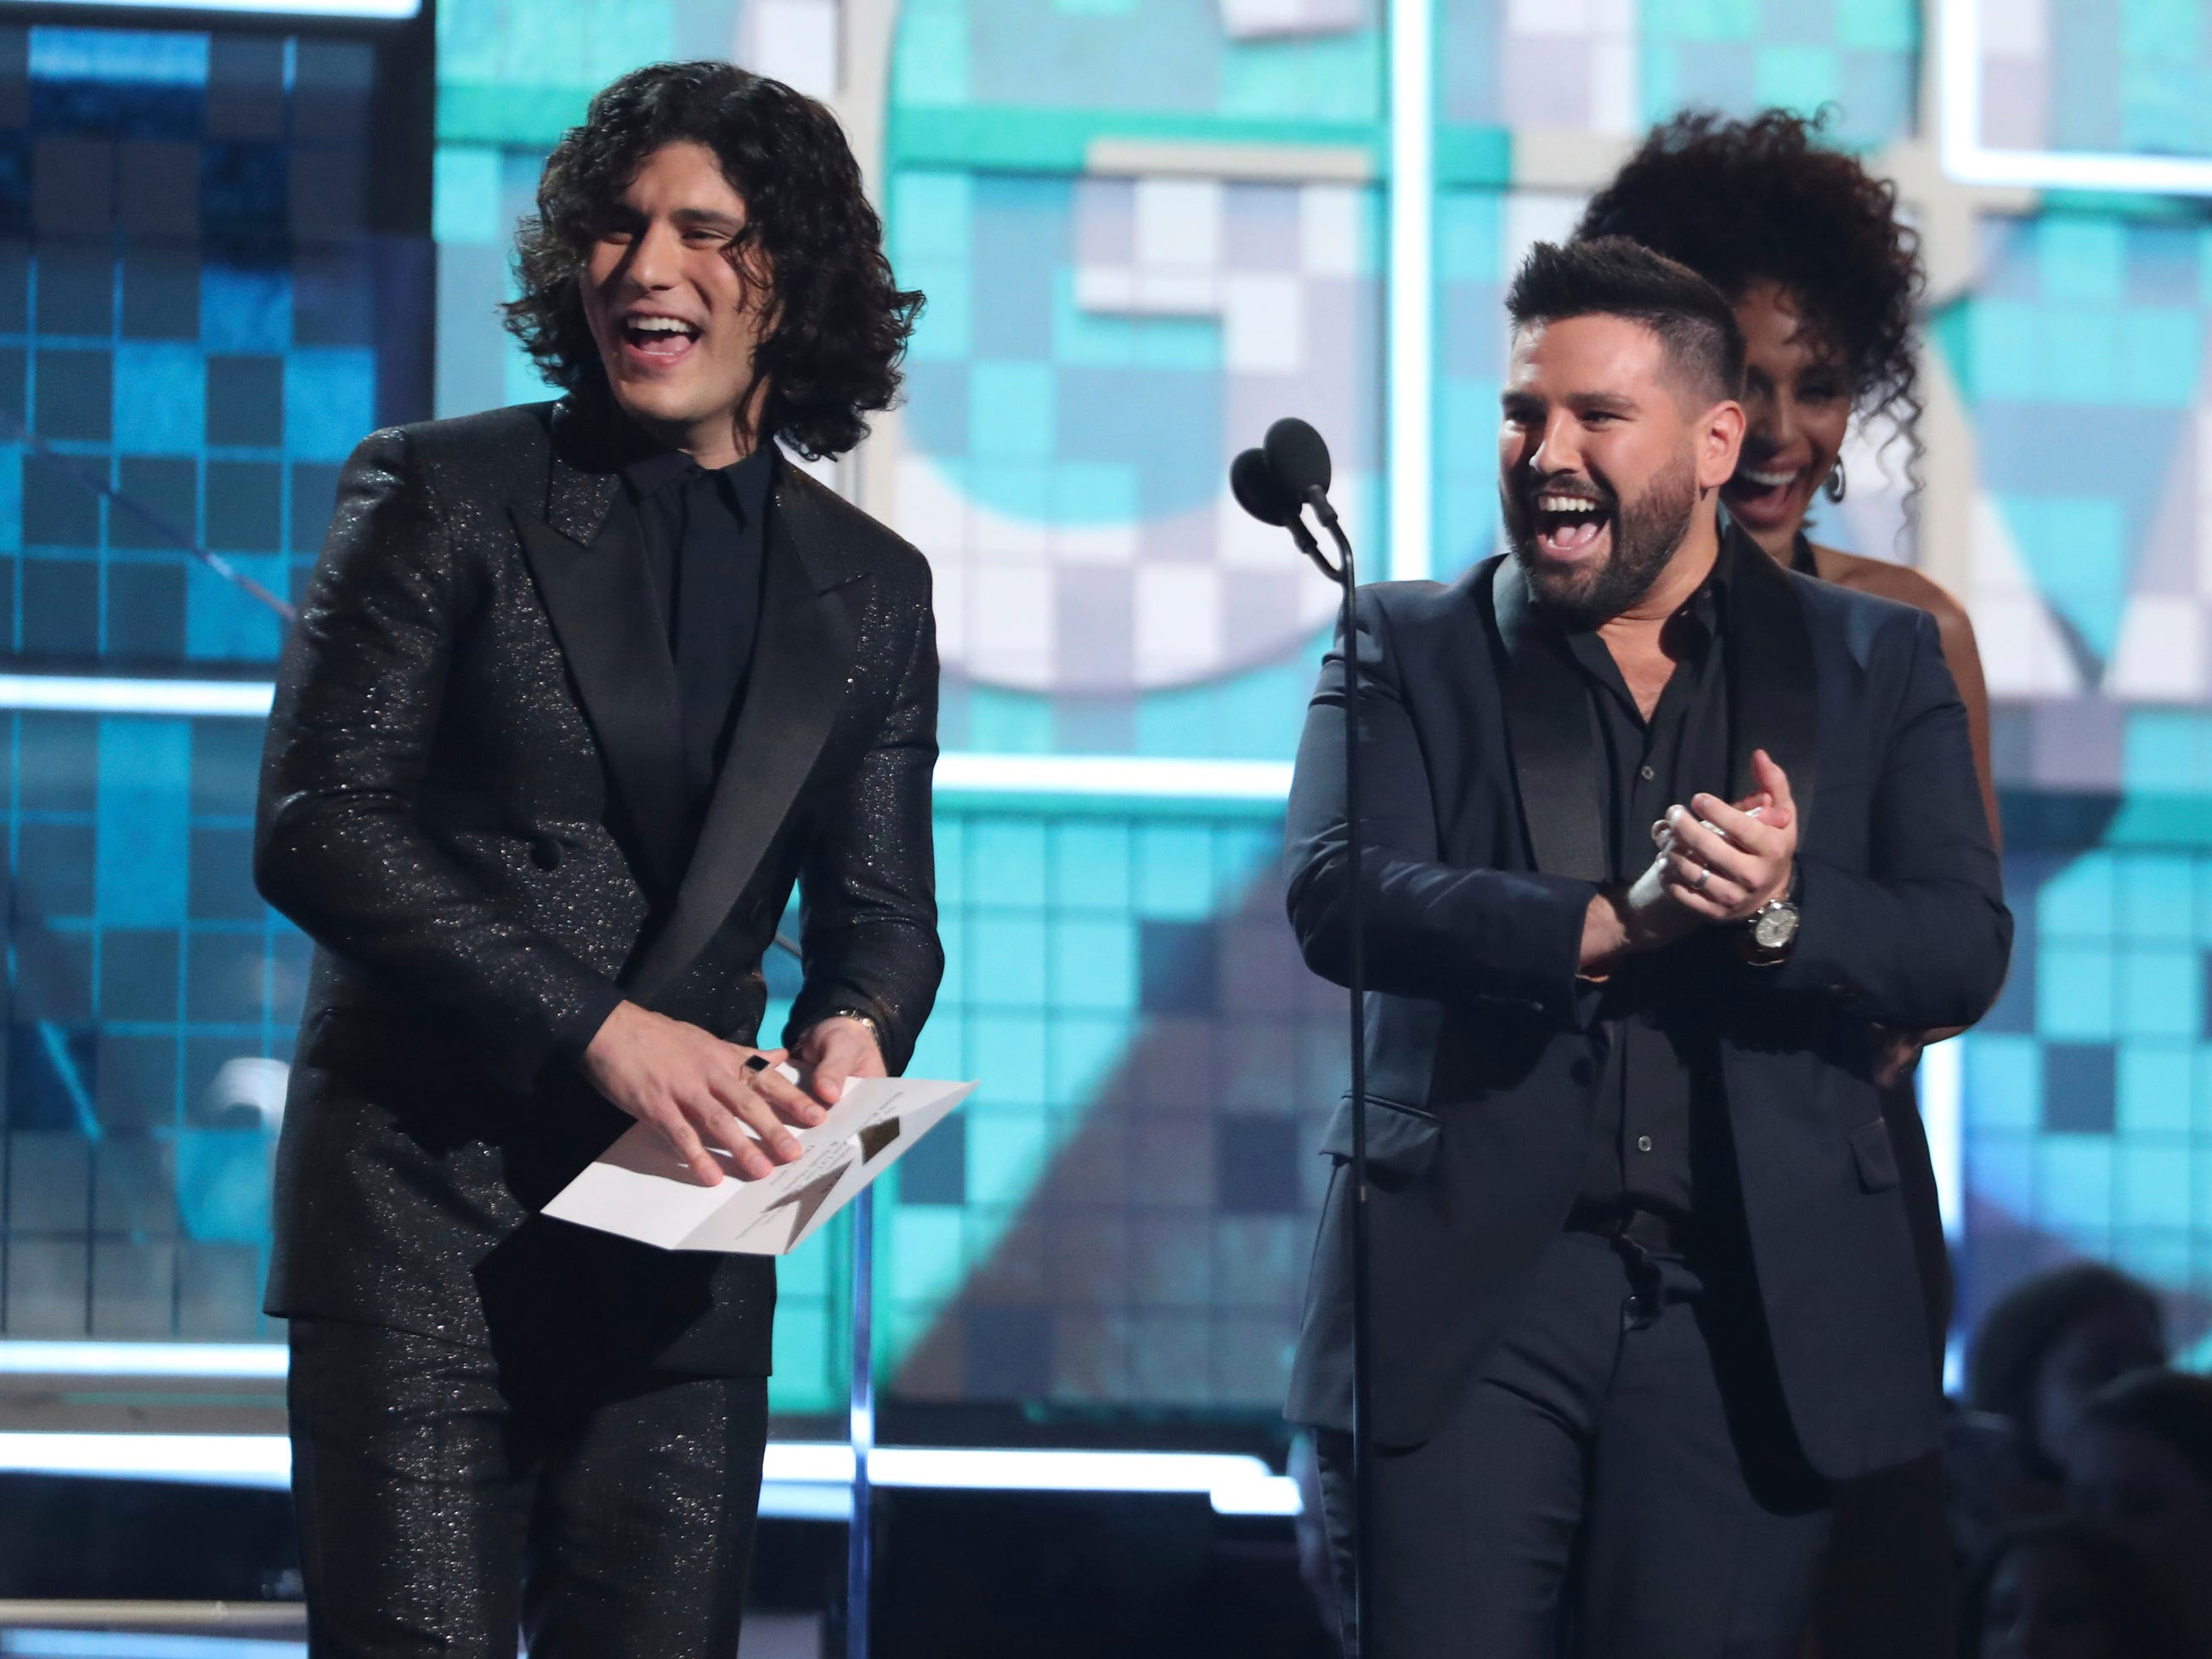 Dan Smyers, left, and Shay Mooney, of Dan + Shay, present the award for best rap song at the 61st annual Grammy Awards on Sunday, Feb. 10, 2019, in Los Angeles.